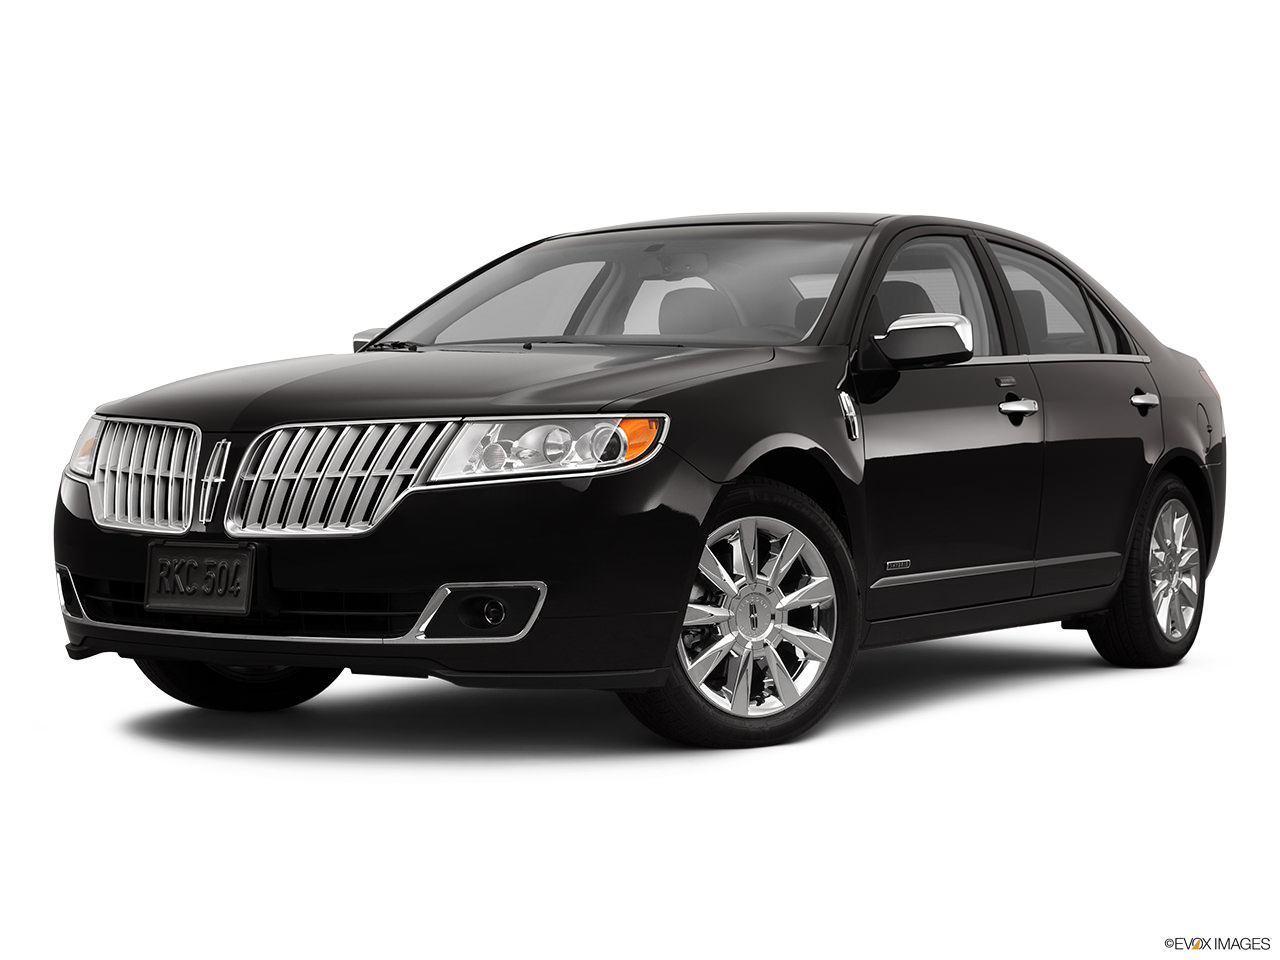 a buyer 39 s guide to the 2012 lincoln mkz hybrid yourmechanic advice. Black Bedroom Furniture Sets. Home Design Ideas